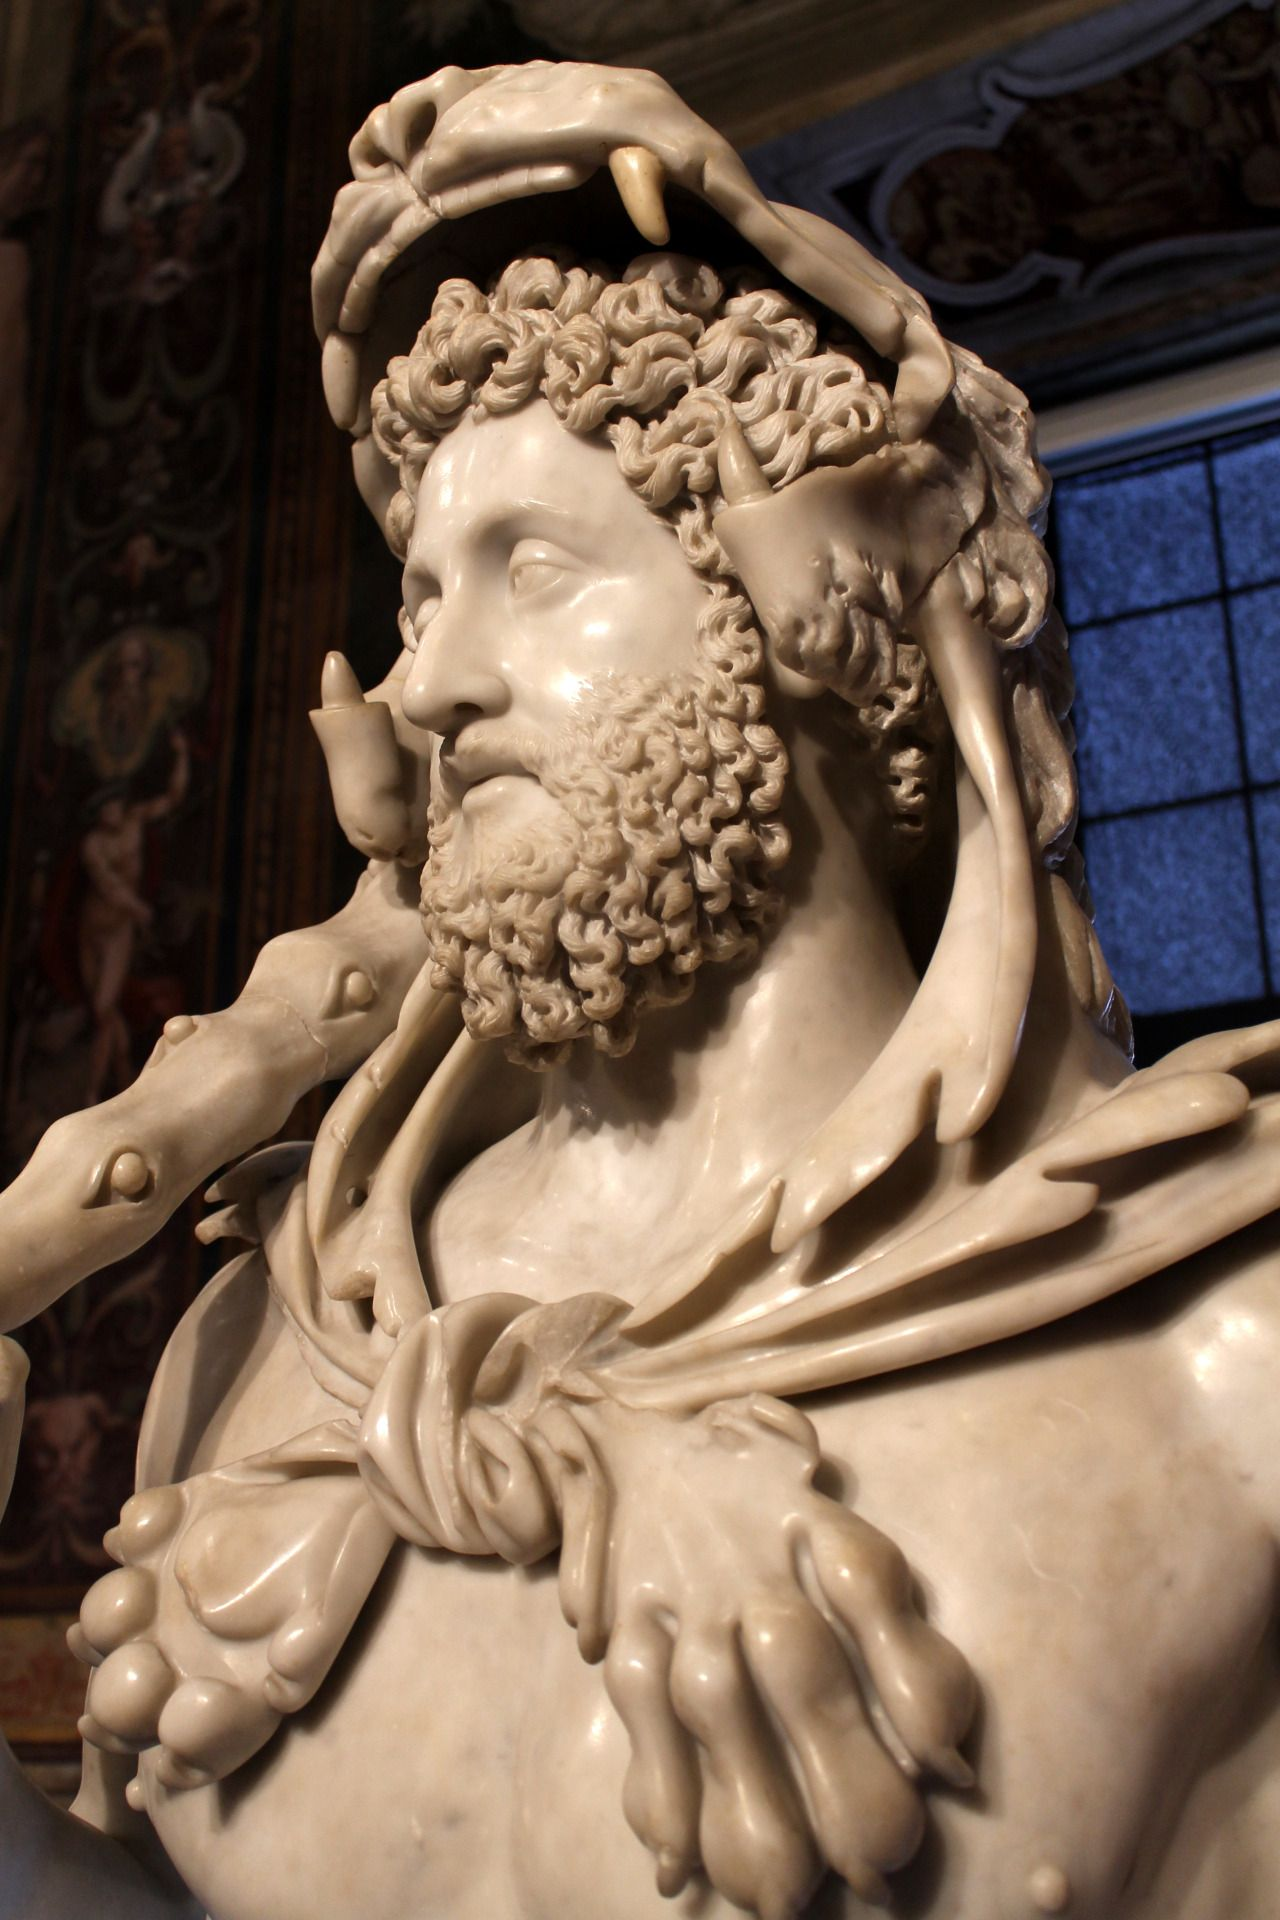 Echiromani bust of the emperor commodus as hercules c 190 ad echiromani bust of the emperor commodus as hercules c 190 ad capitoline museums rome fandeluxe Gallery